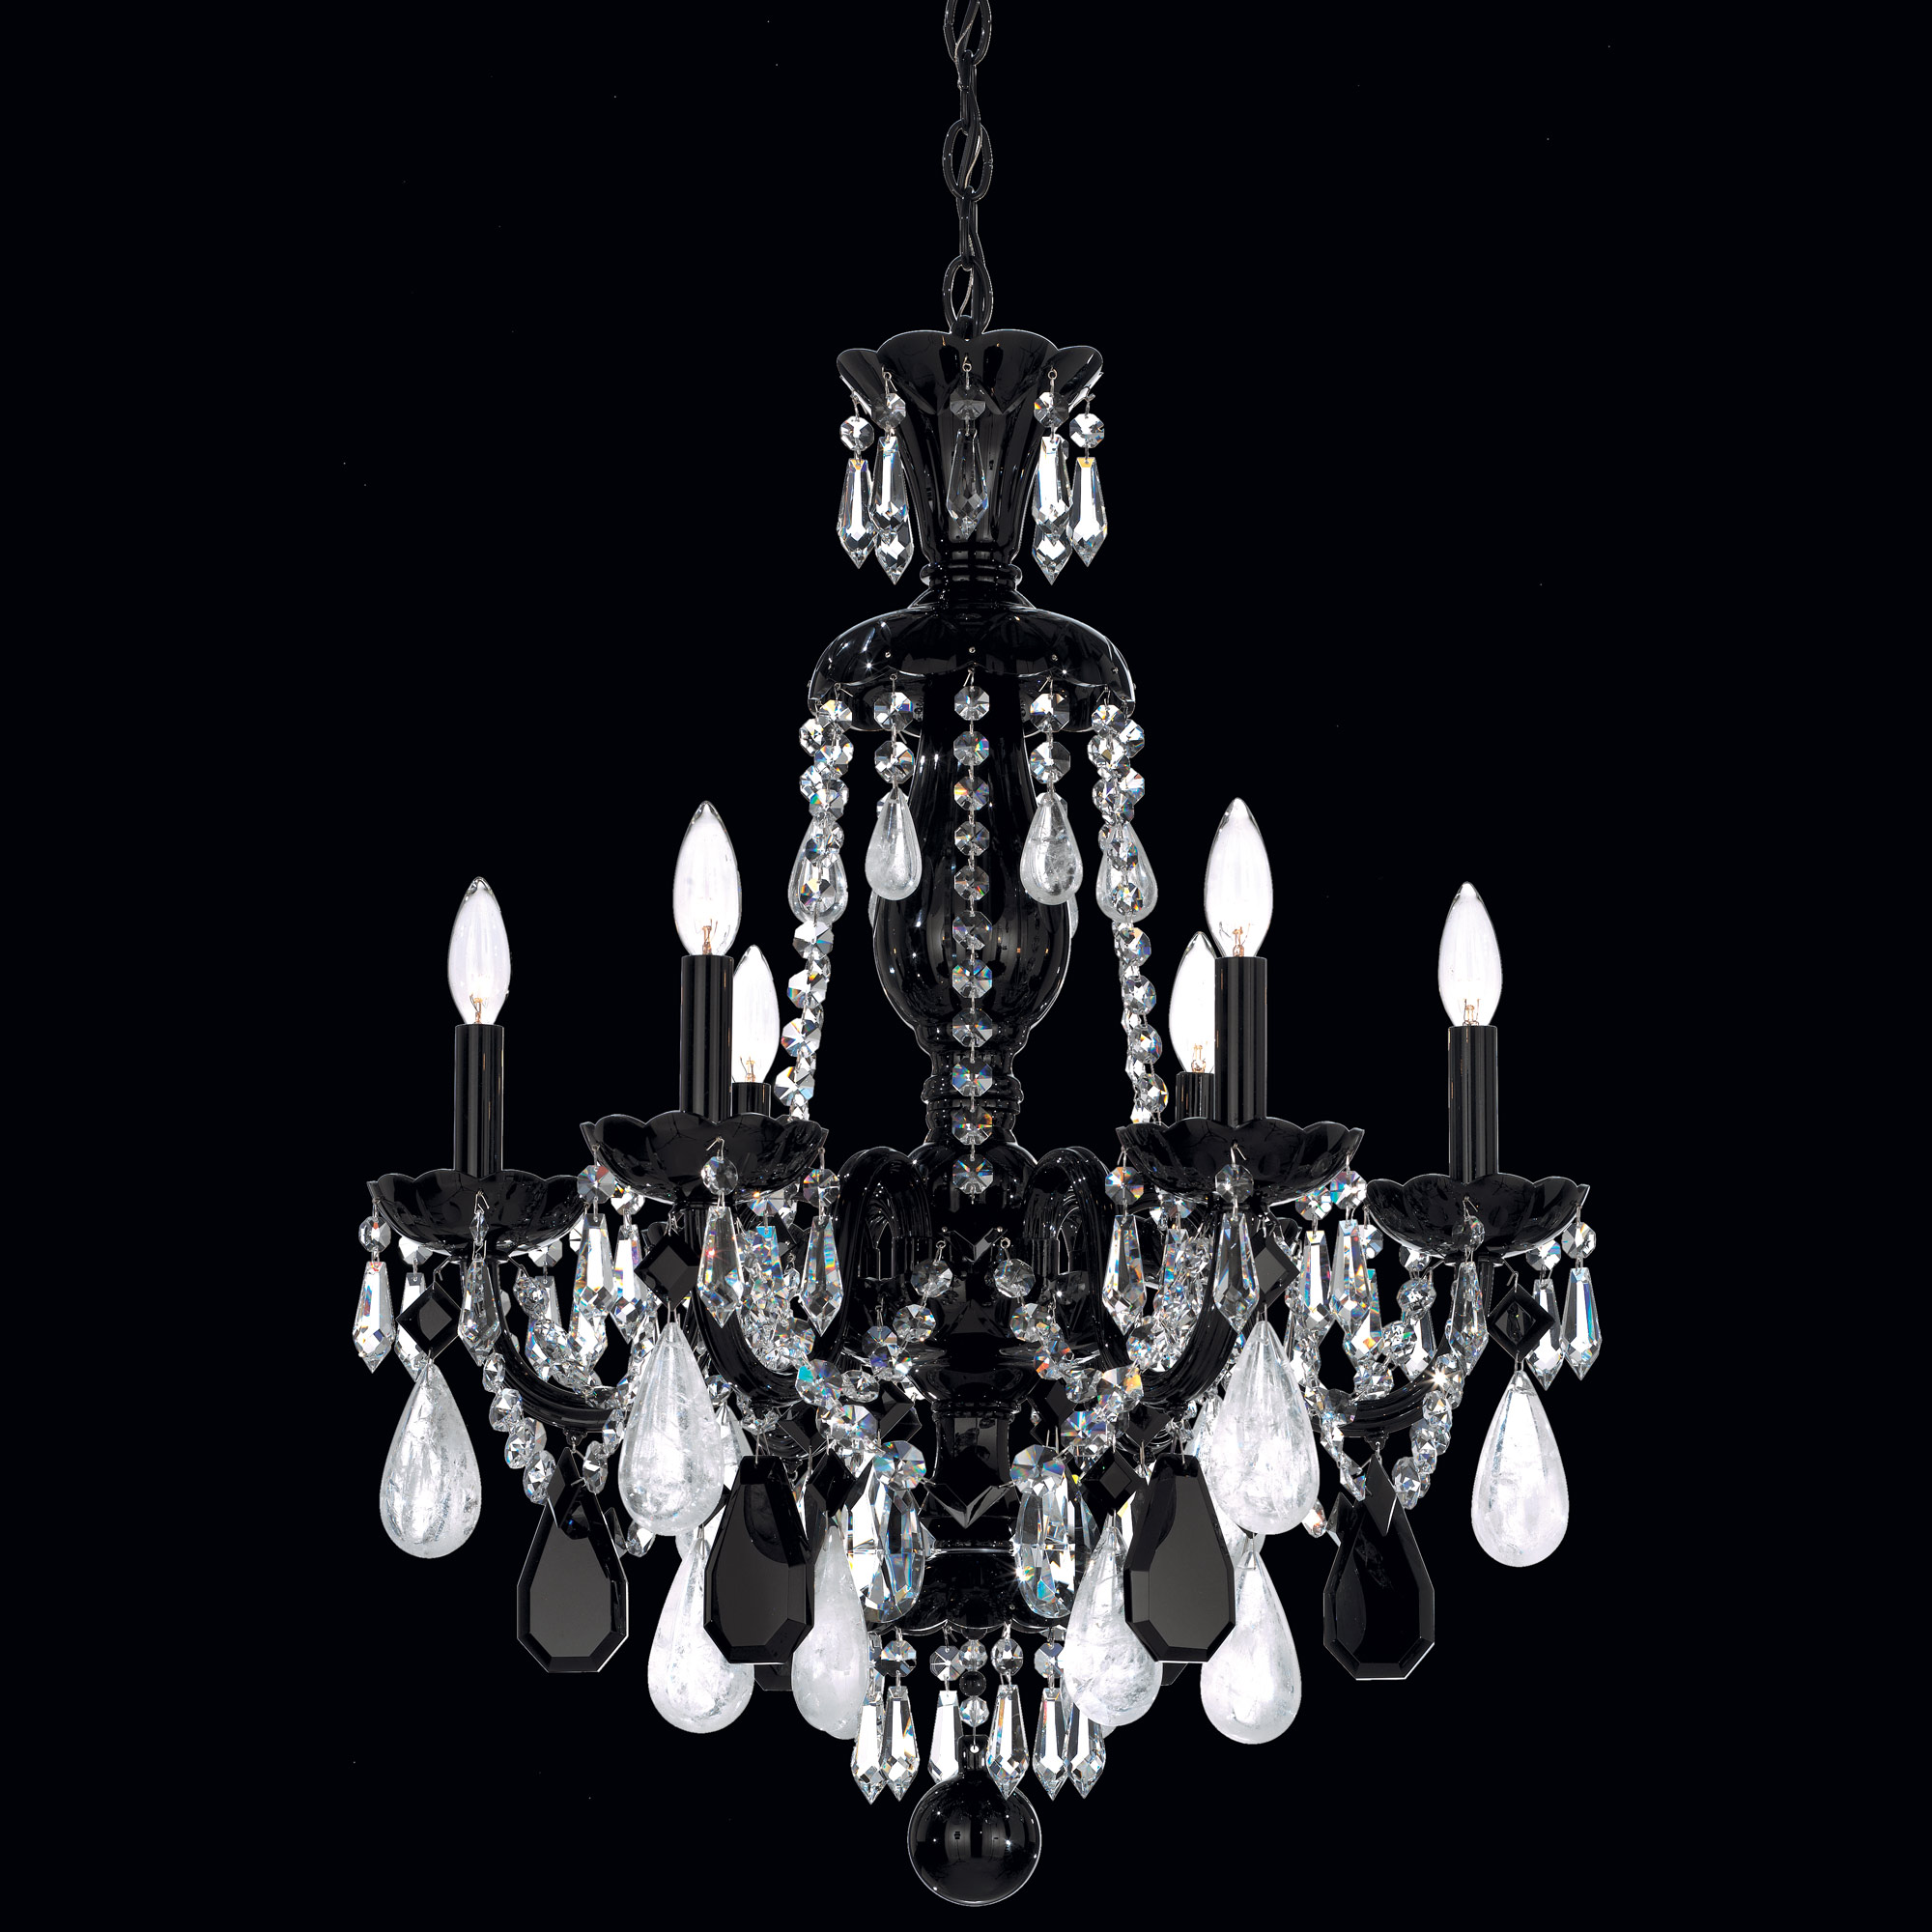 Hamilton Rock Crystal Chandelier By Schonbek 5535bk